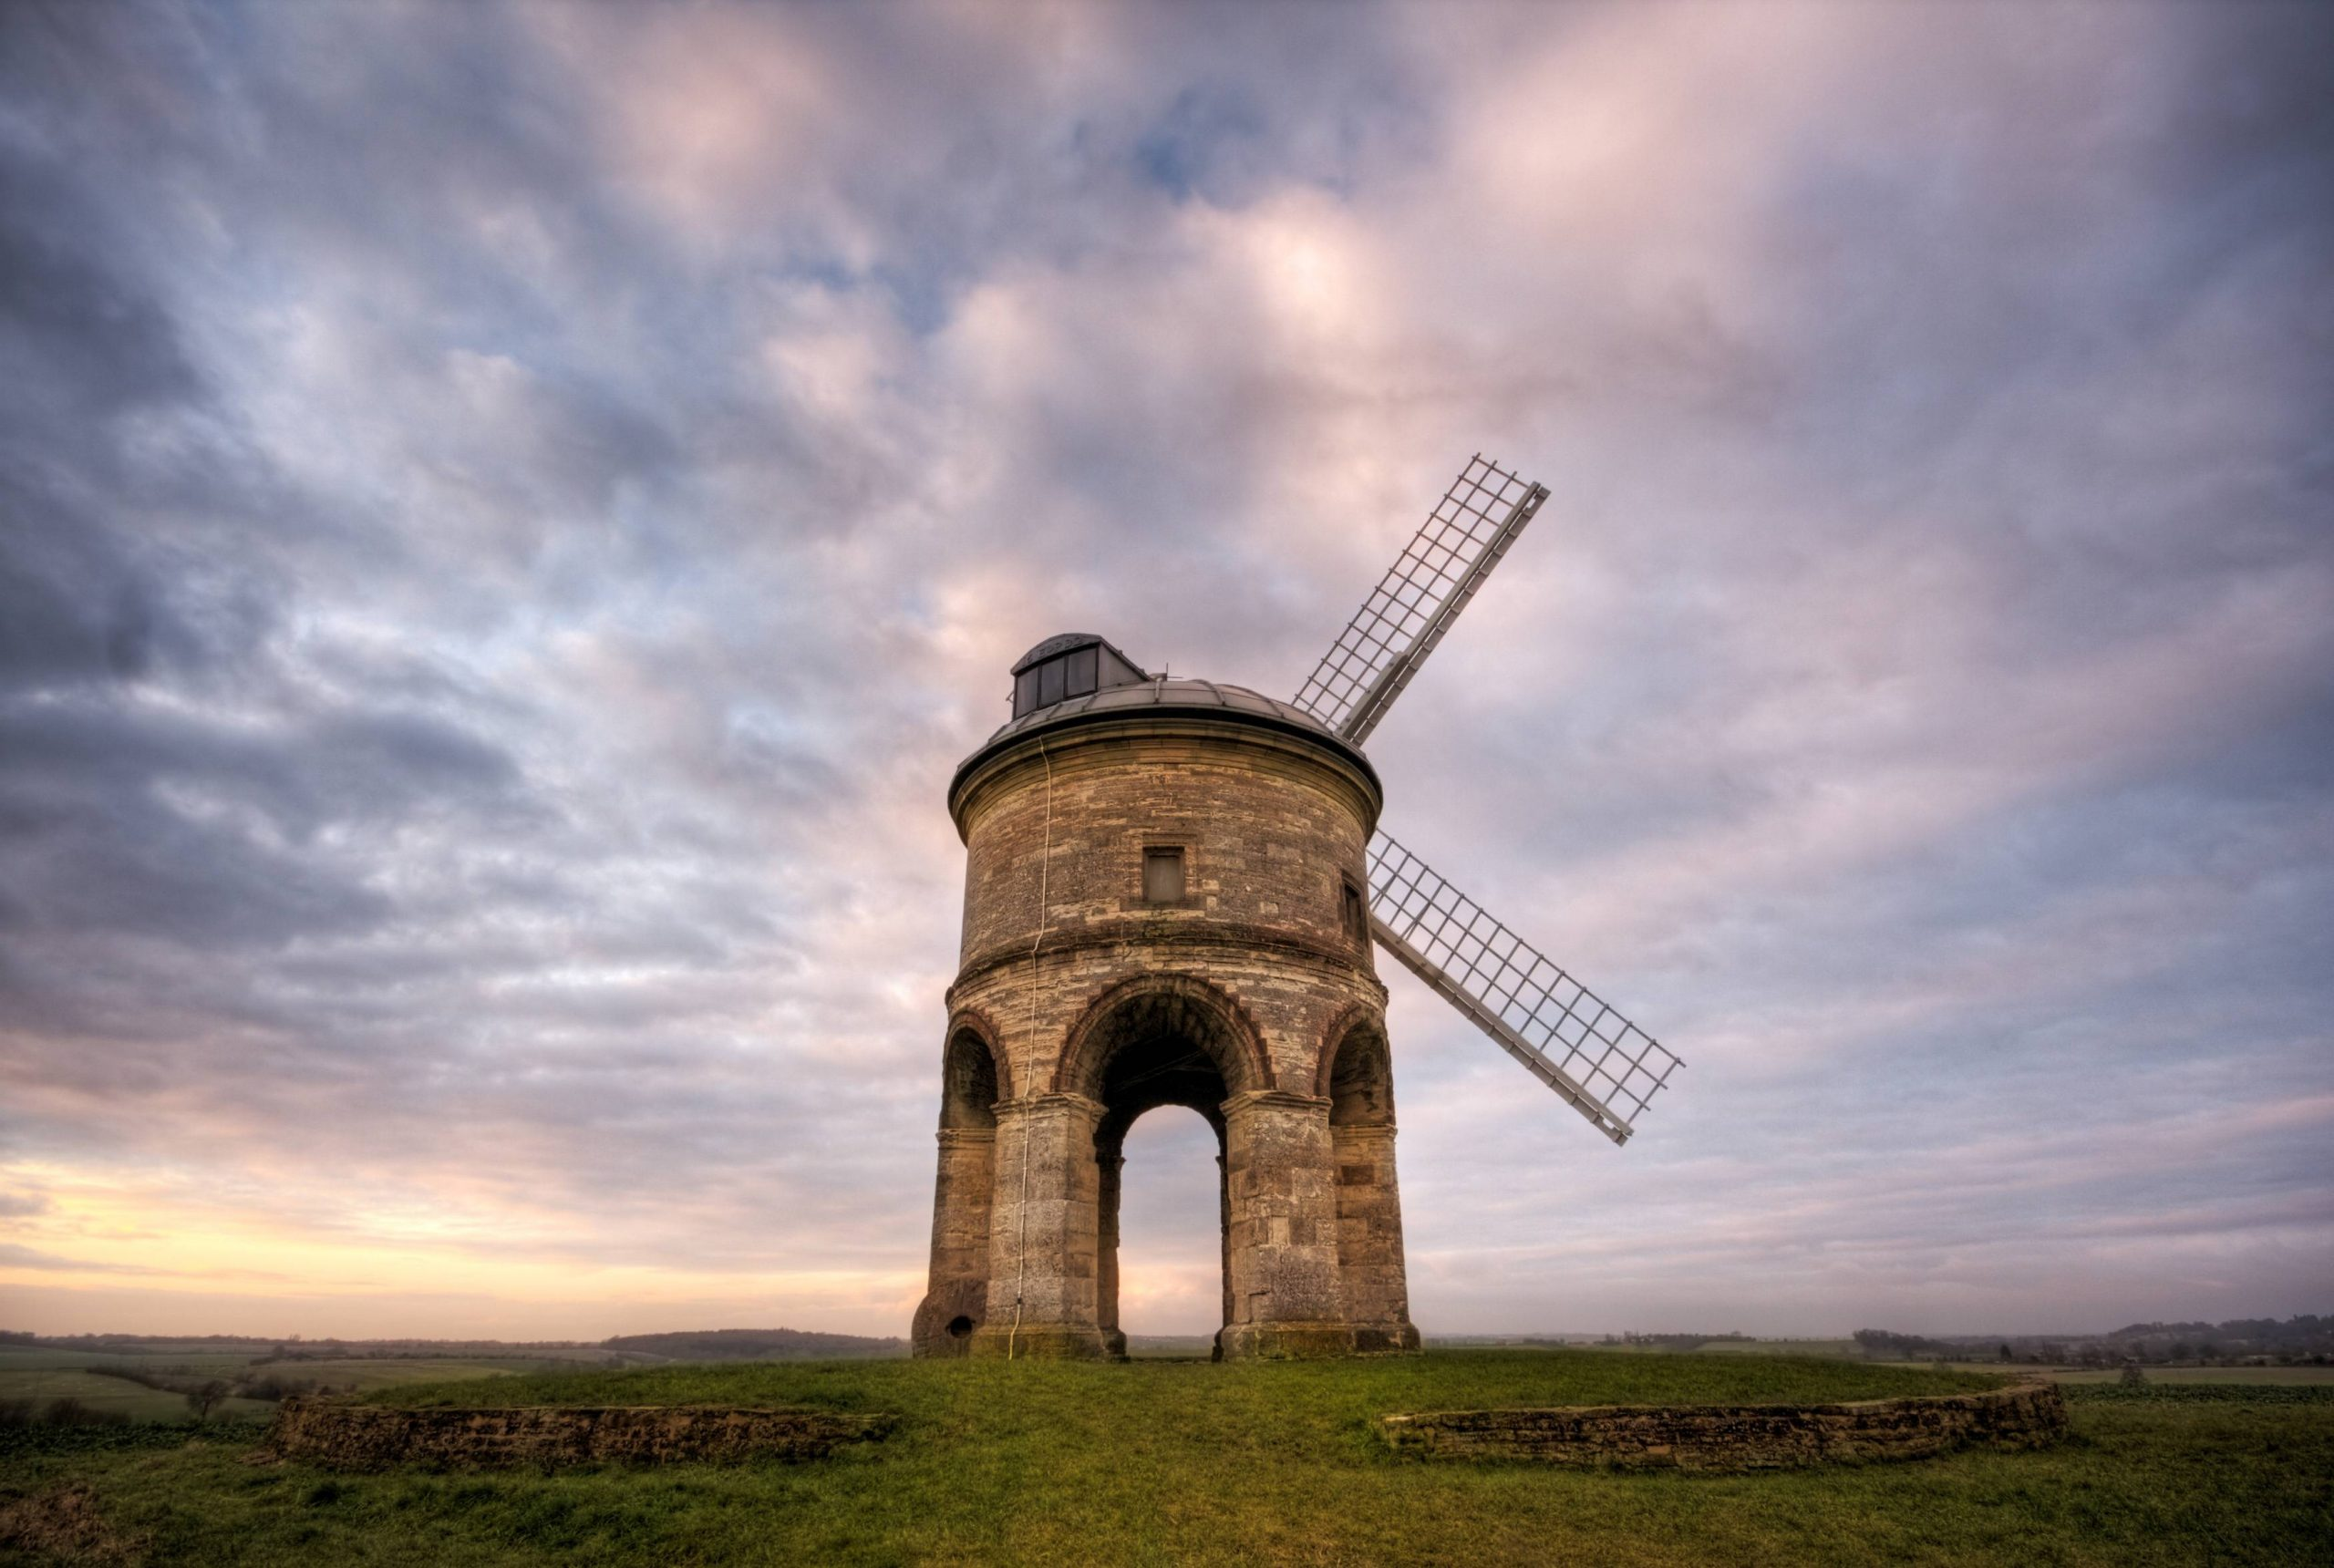 The Chesterton Windmill. Image courtesy https://www.ourwarwickshire.org.uk/.